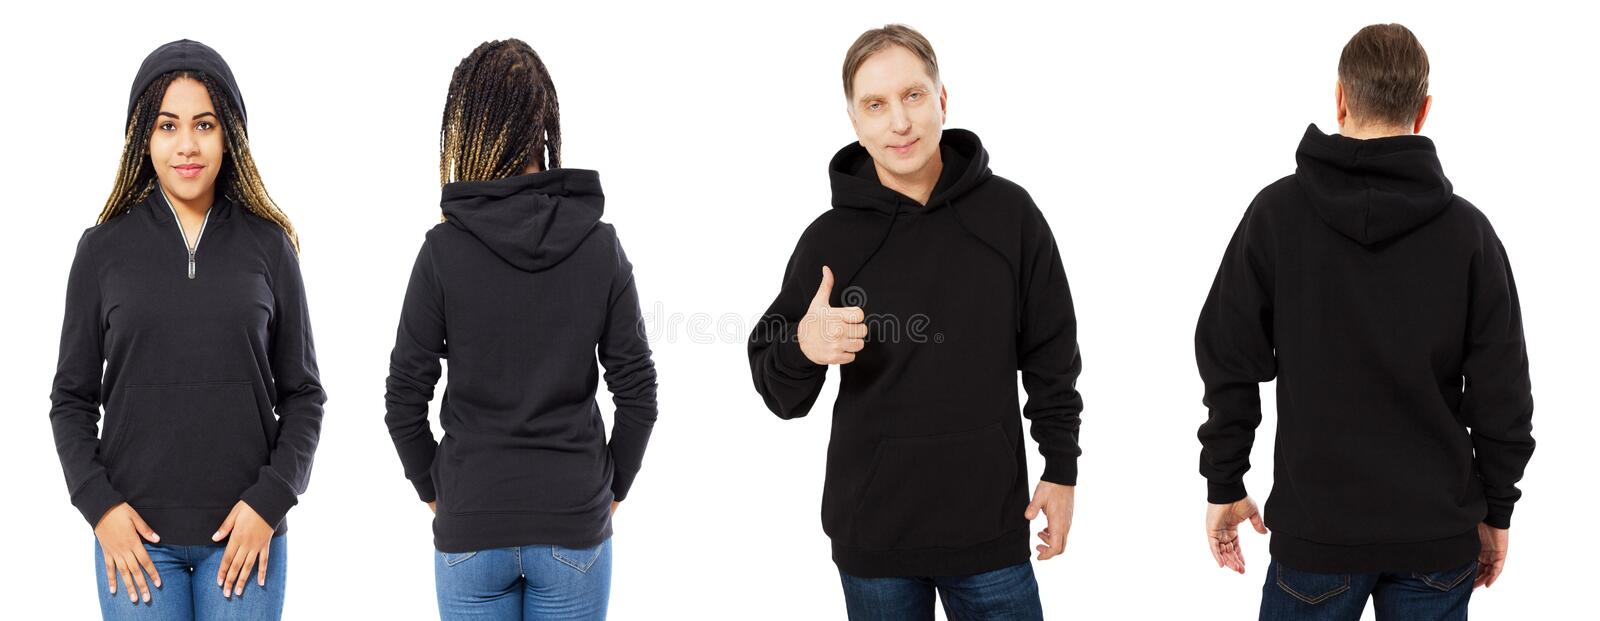 A girl in a black sweatshirt with a hood and a man in a sweatshirt front and back isolated, hoodie mockup empty royalty free stock images